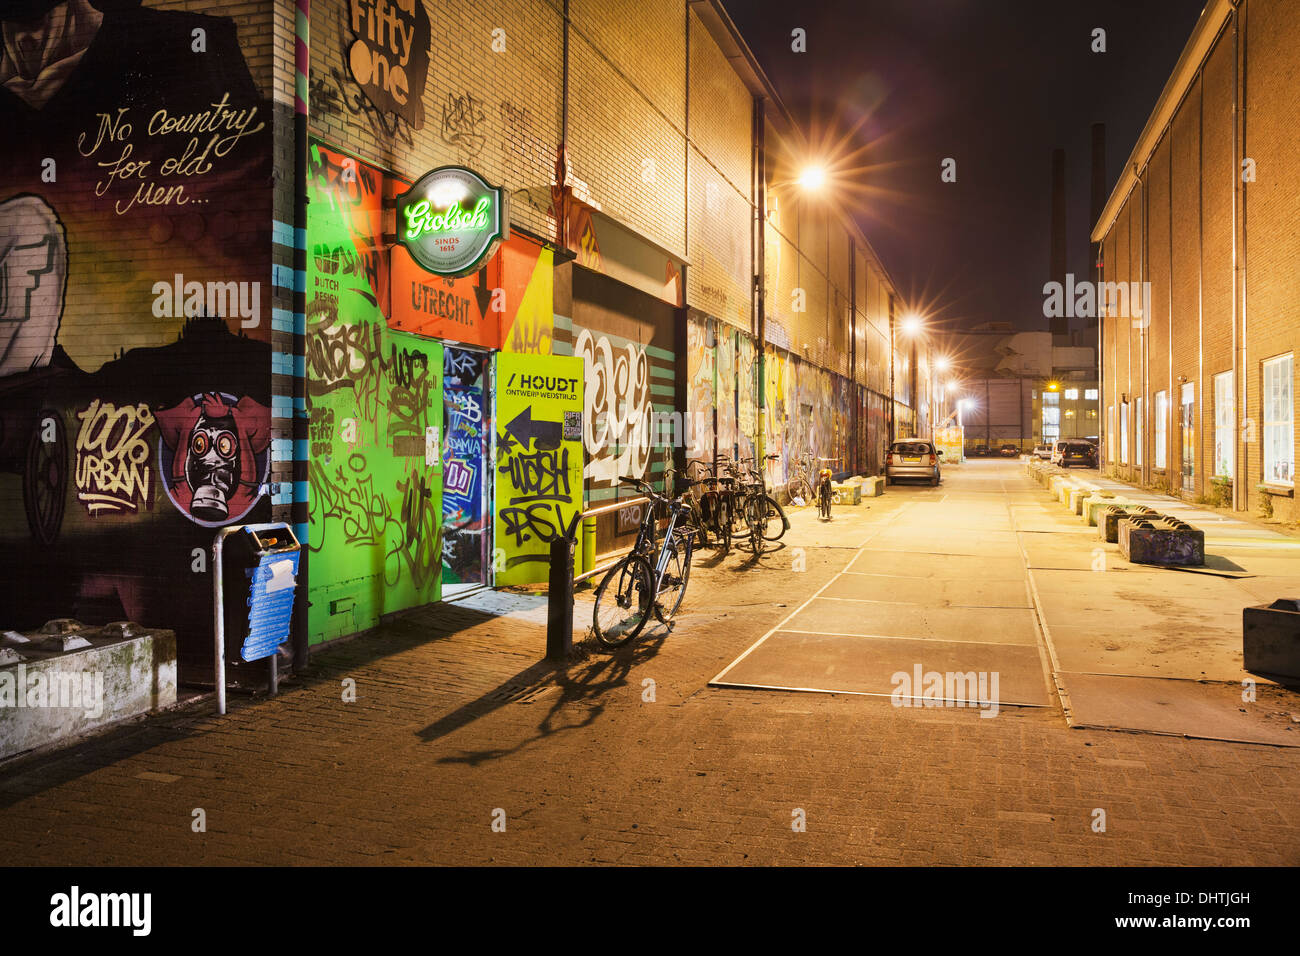 Netherlands, Eindhoven, District called Strijp-S. Entrance of Area Fifty One skatepark. Night - Stock Image